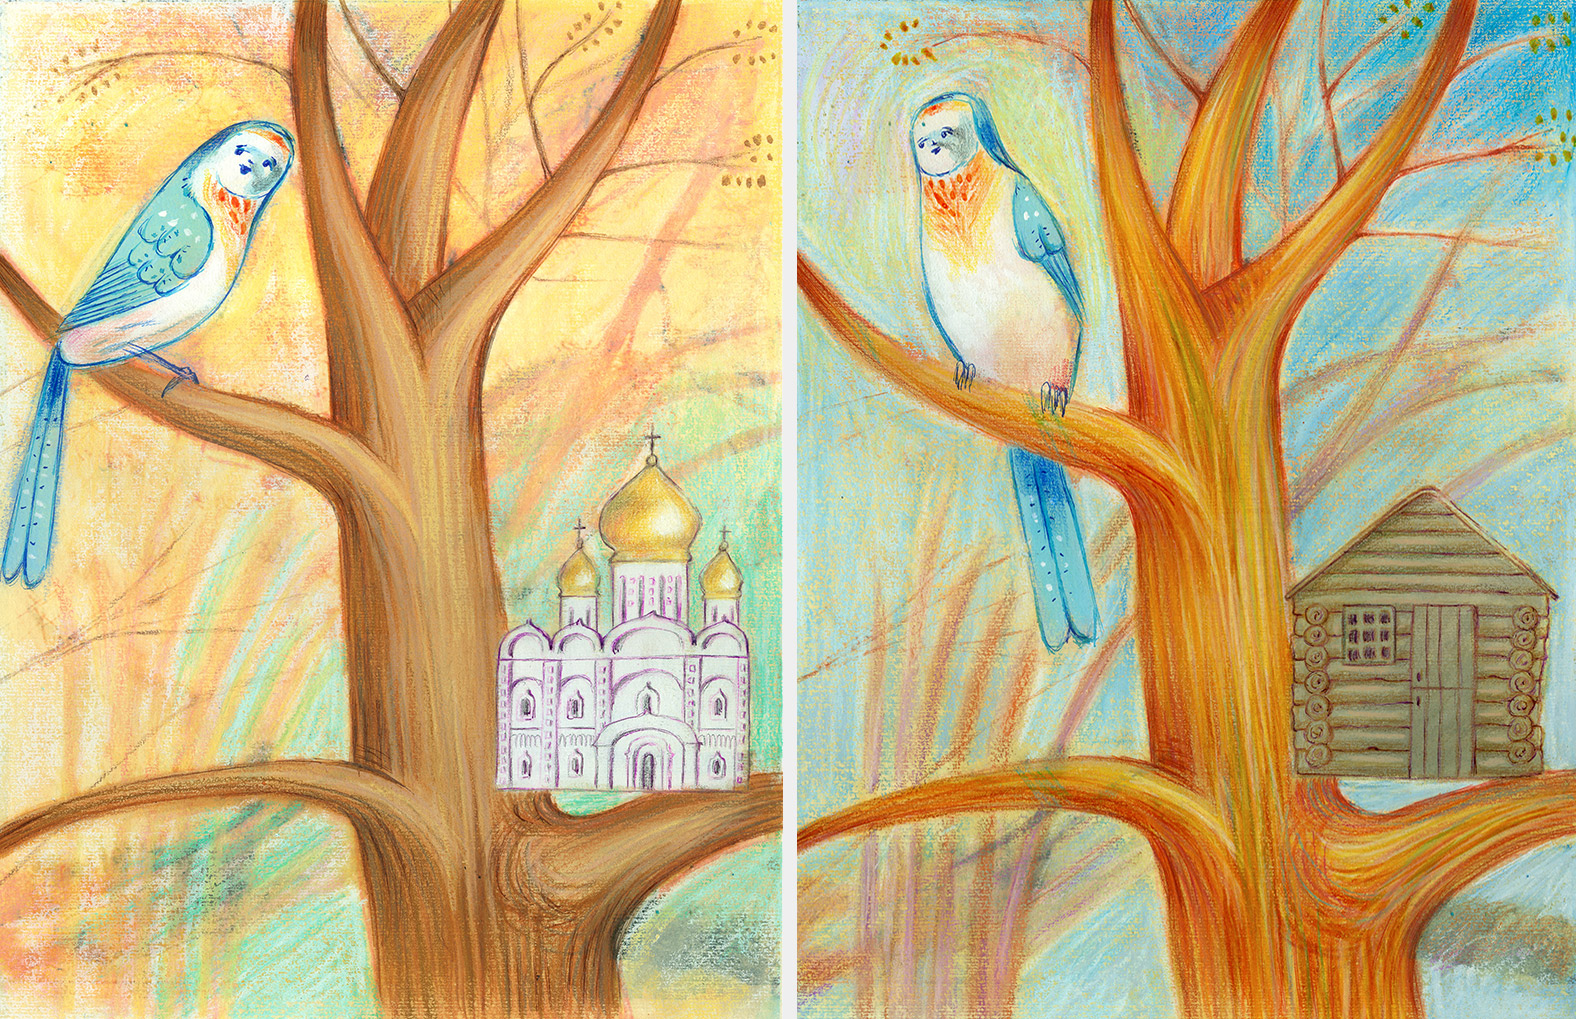 Two illustrations of a bird which has built the wrong houses, one is a log cabin and the other one is an Orthodox church. He has to learn how to build the nest